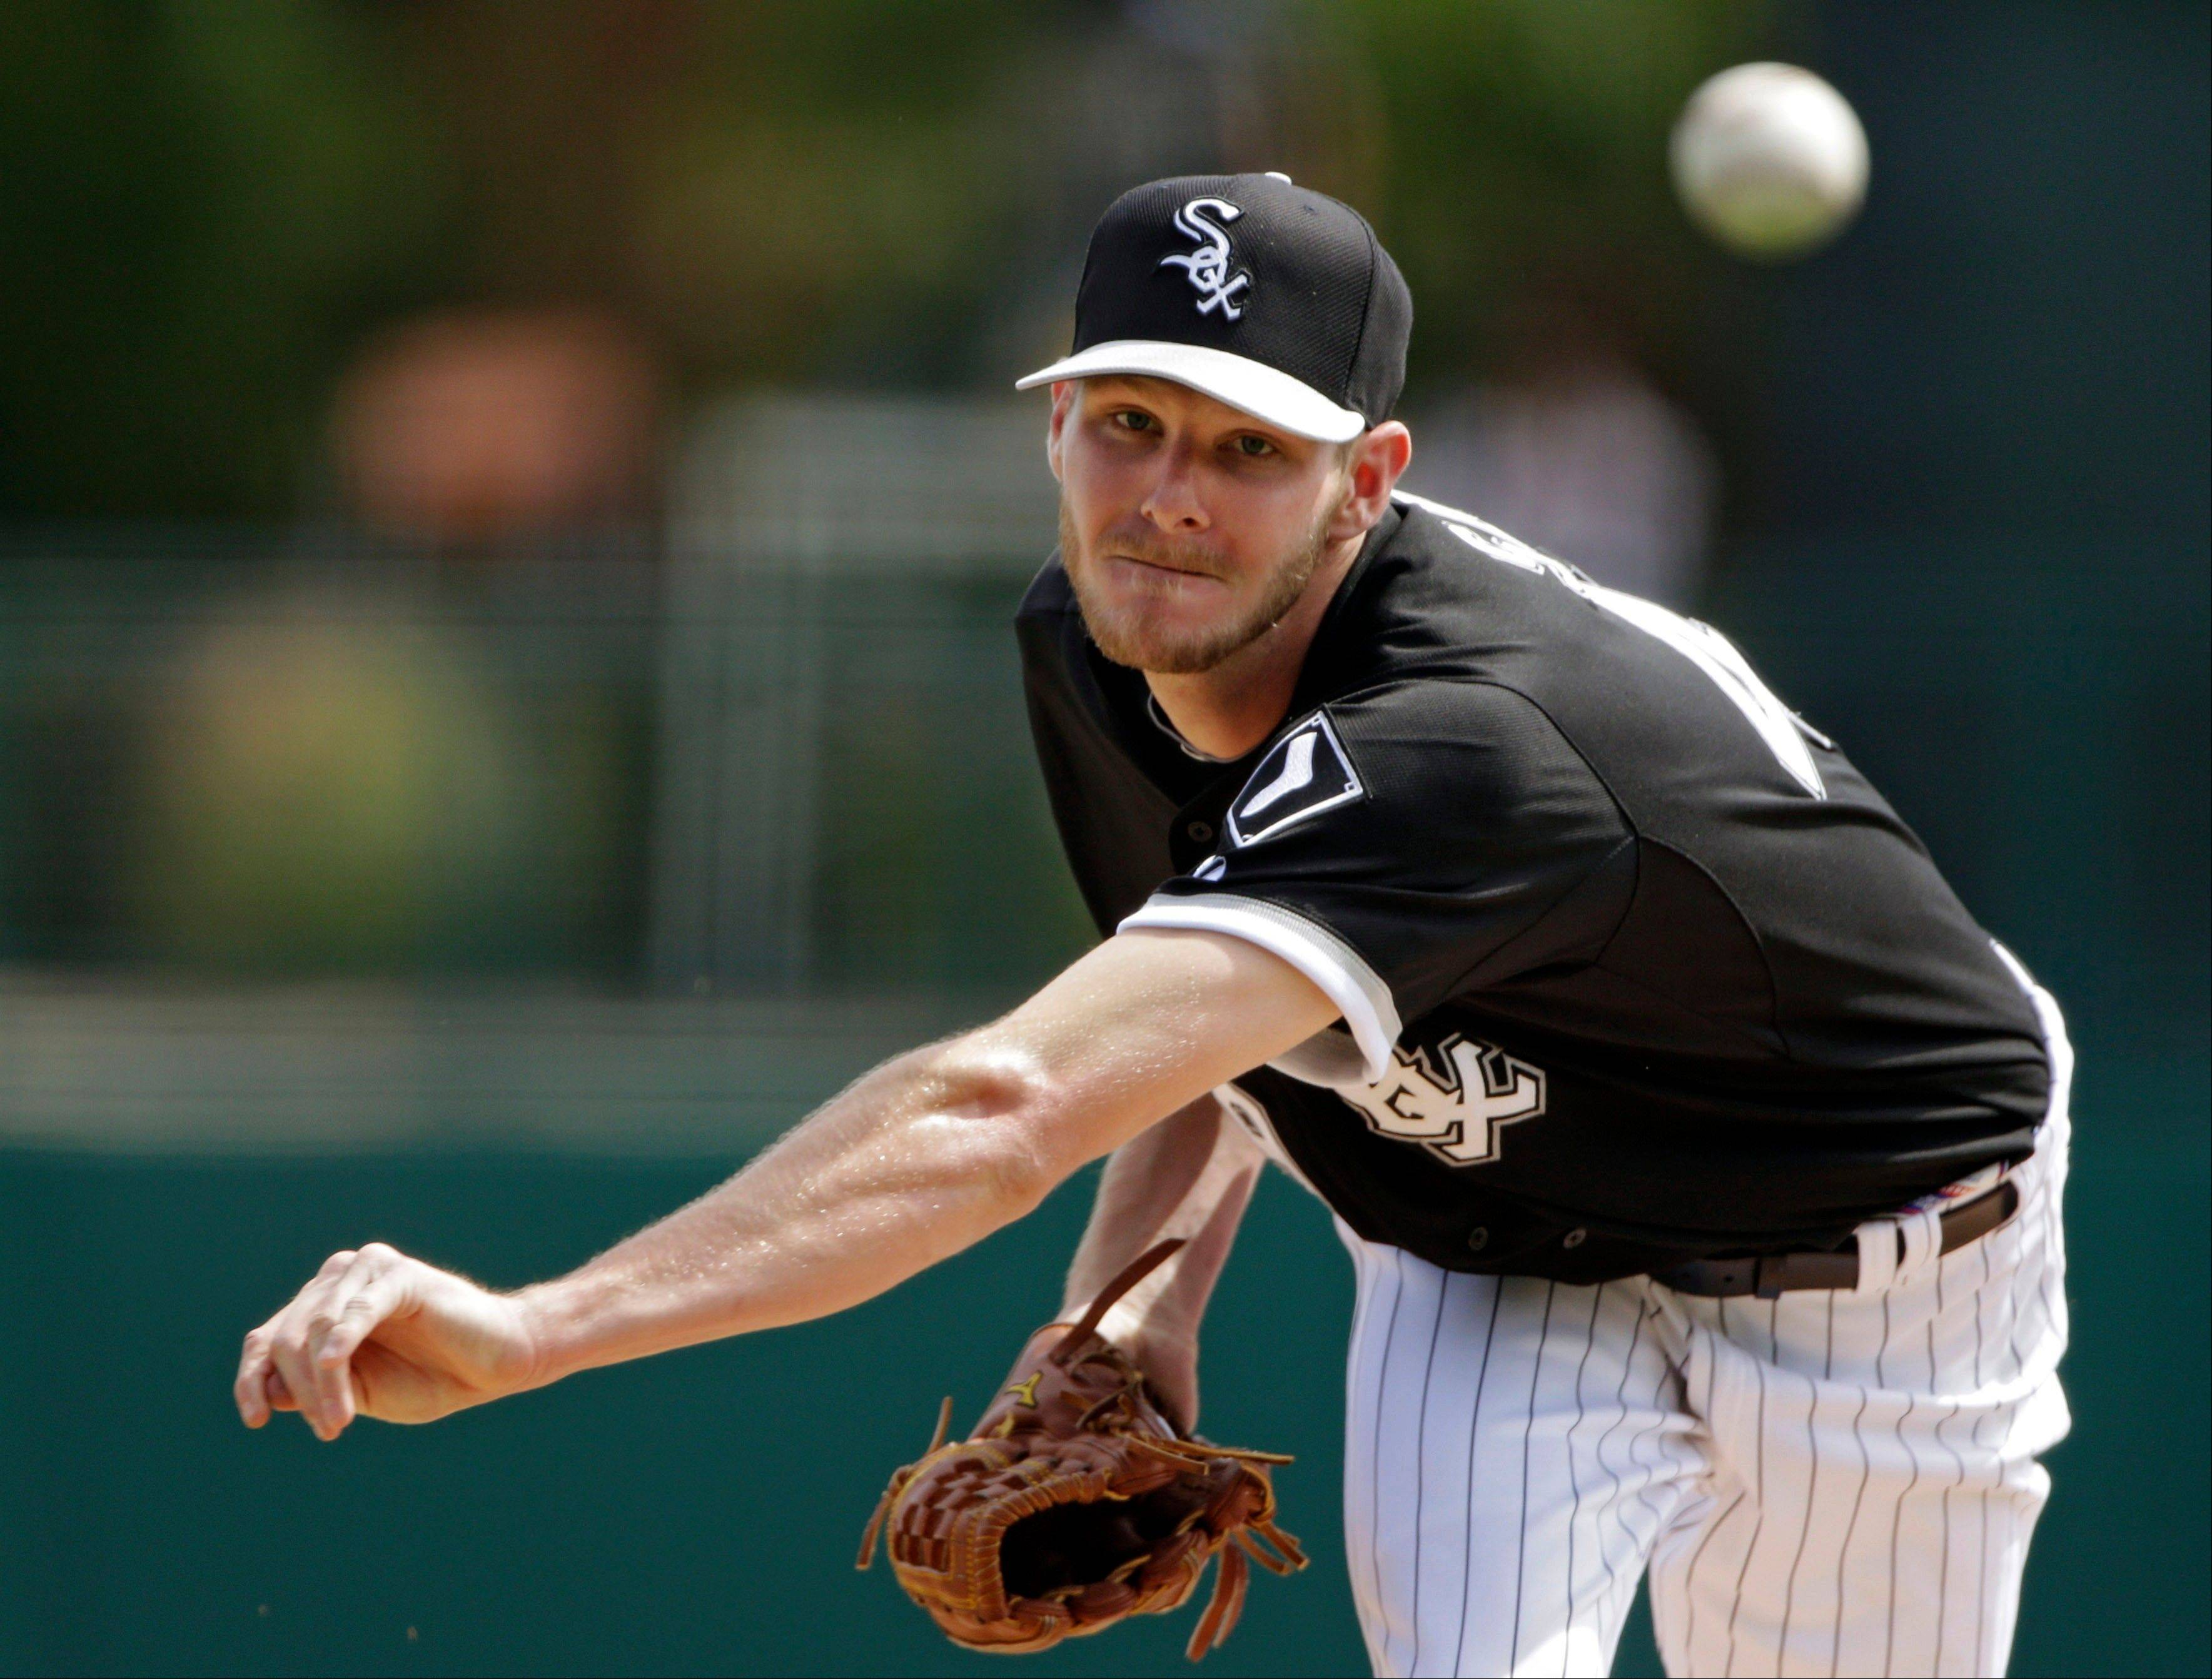 Chris Sale will be on the mound Monday when the White Sox open the season against the Kansas City Royals at U.S. Cellular Field.